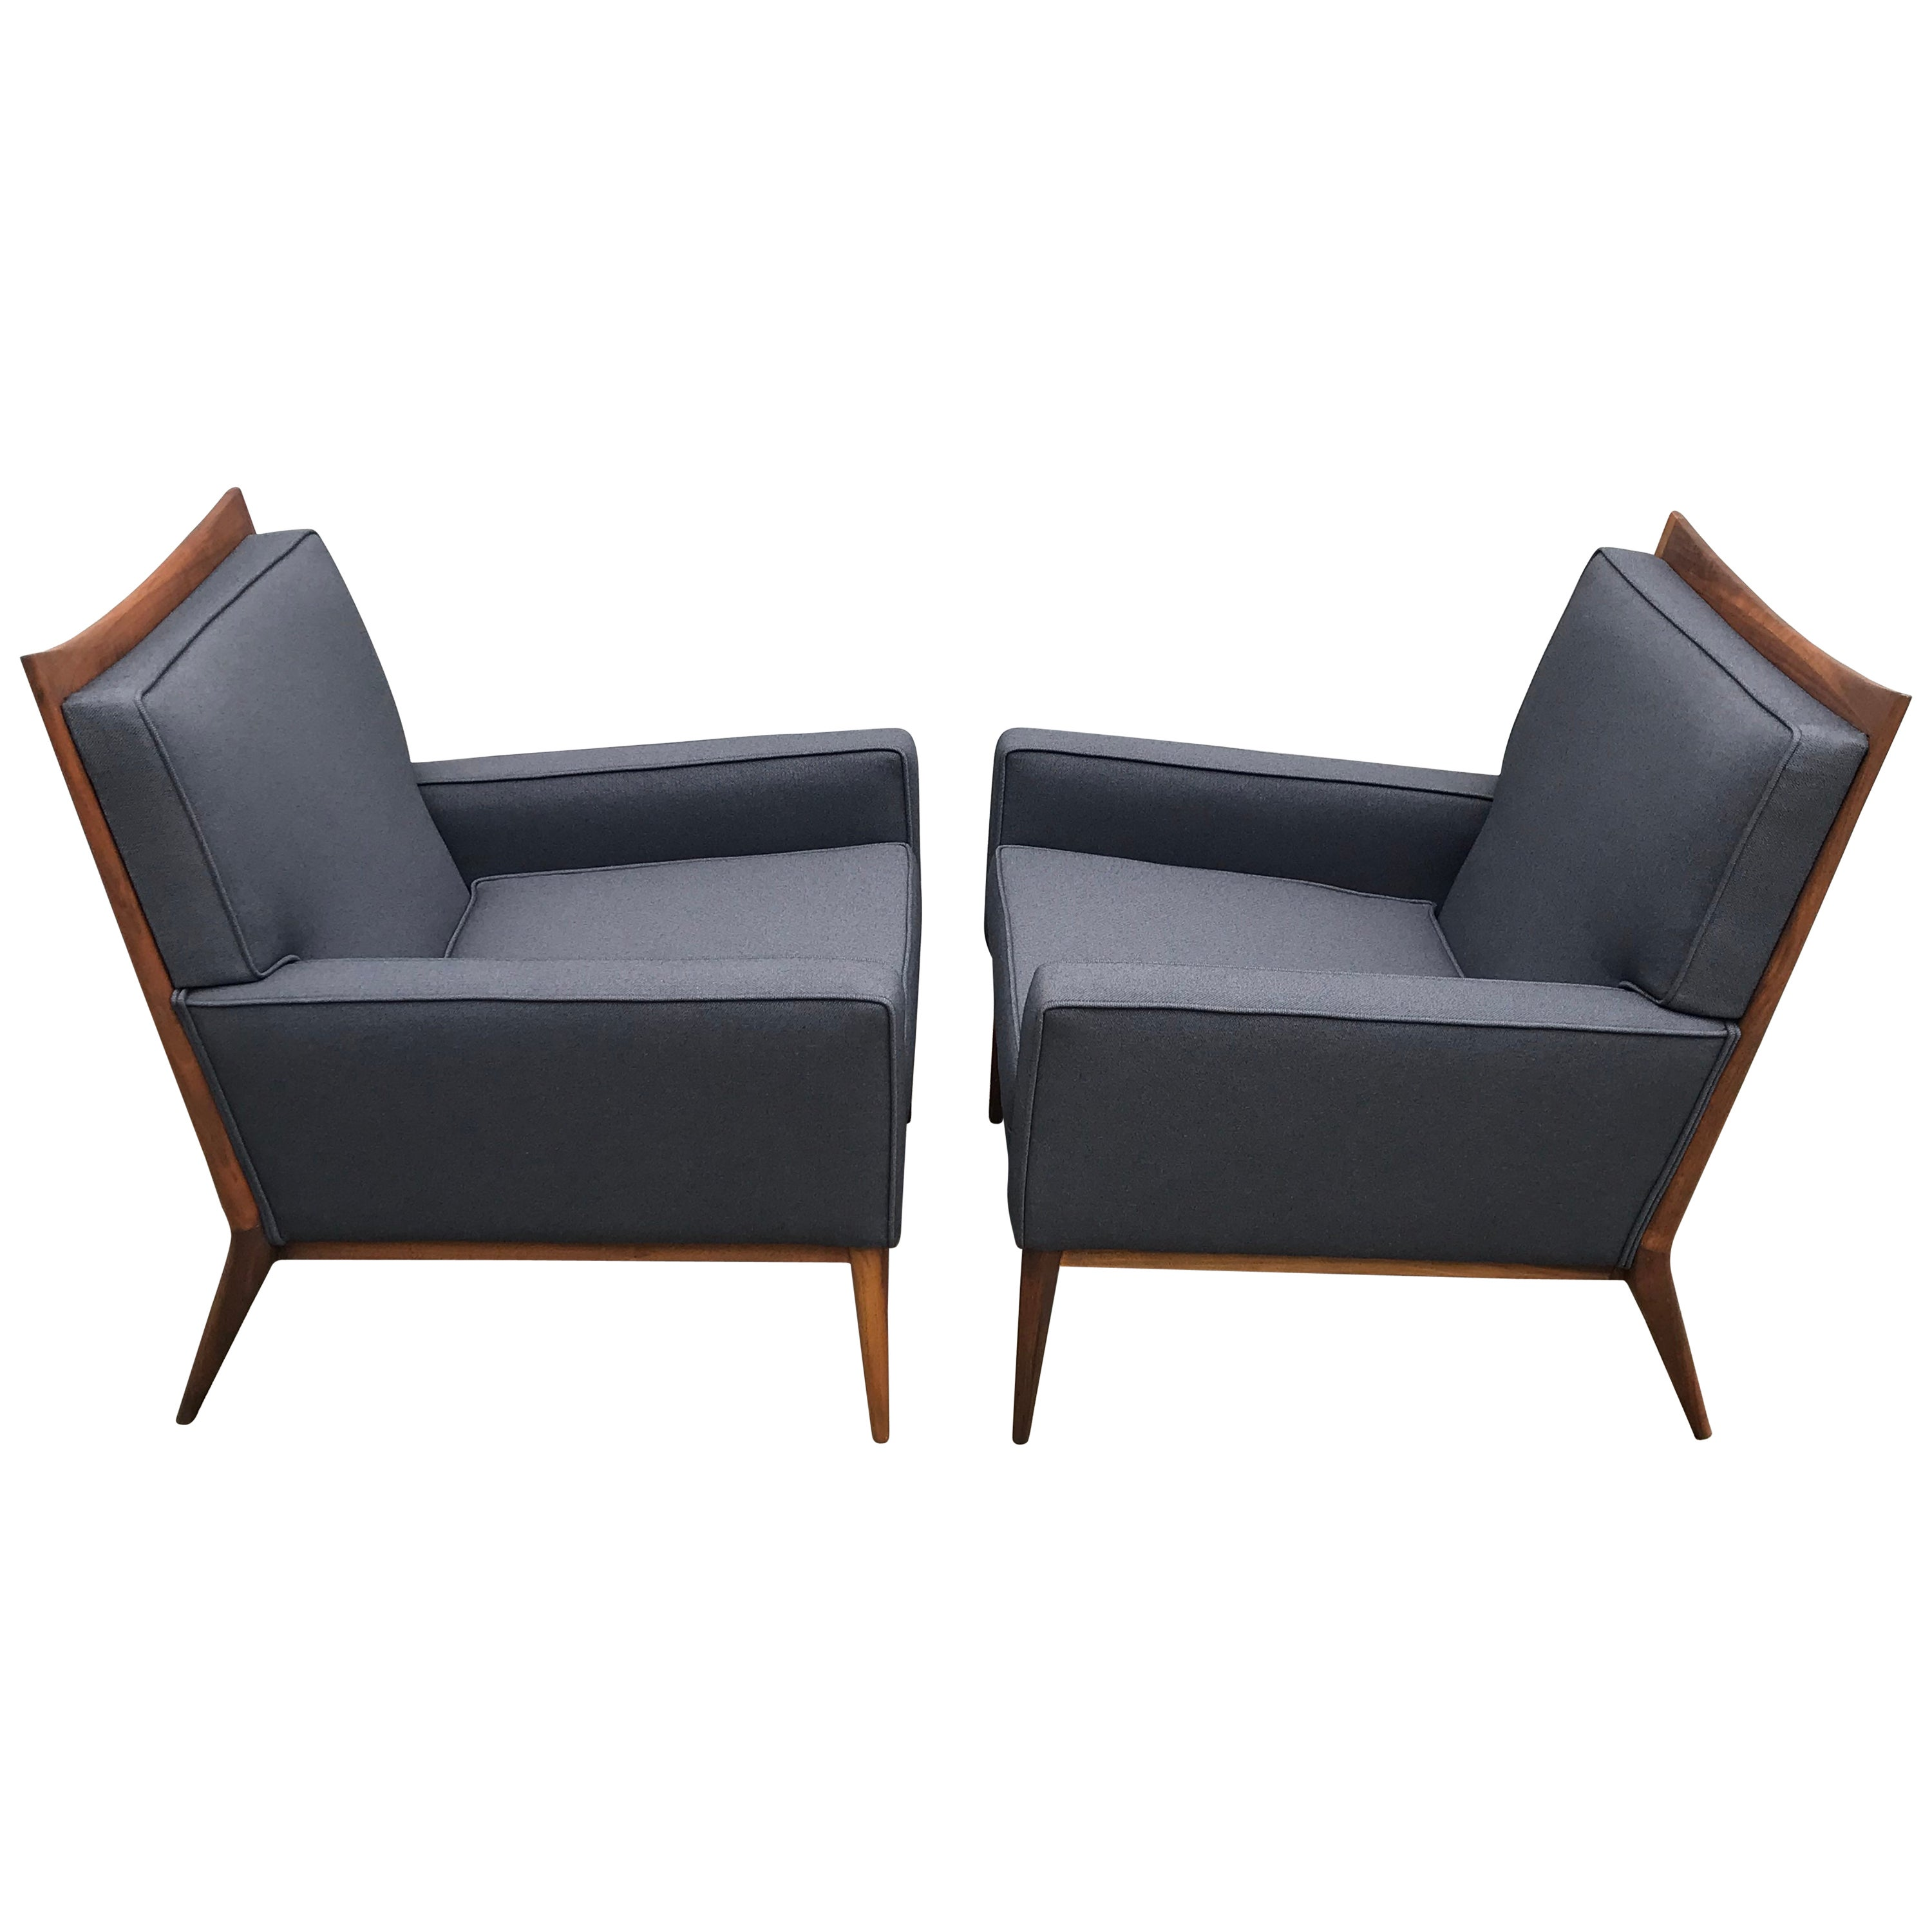 Pair of Slate Grey Paul McCobb Lounge Club Chairs for Directional, 1950's